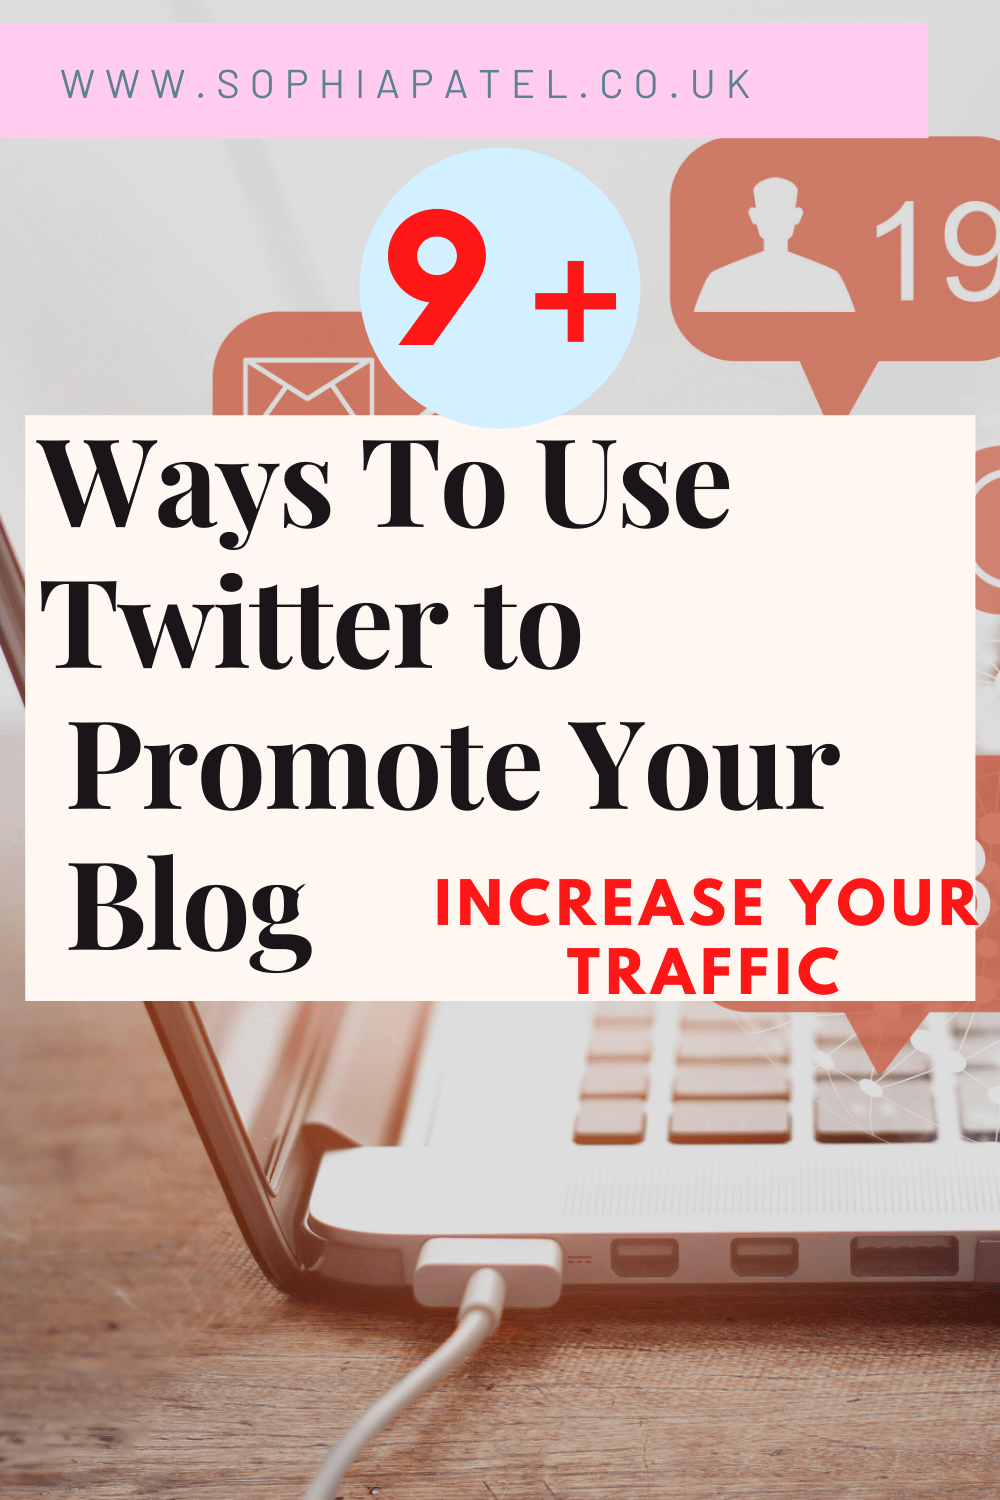 After blogging for a while, you get to know the tips and tricks for increasing traffic. But what I did not know until quite a while in was to how to use twitter to promote your blog. It seems pretty obvious once you know but it can take time to see results. Here are 9 awesome ways to convert your Twitter account into a traffic generating machine.    #socialmediatips #bloggingtips